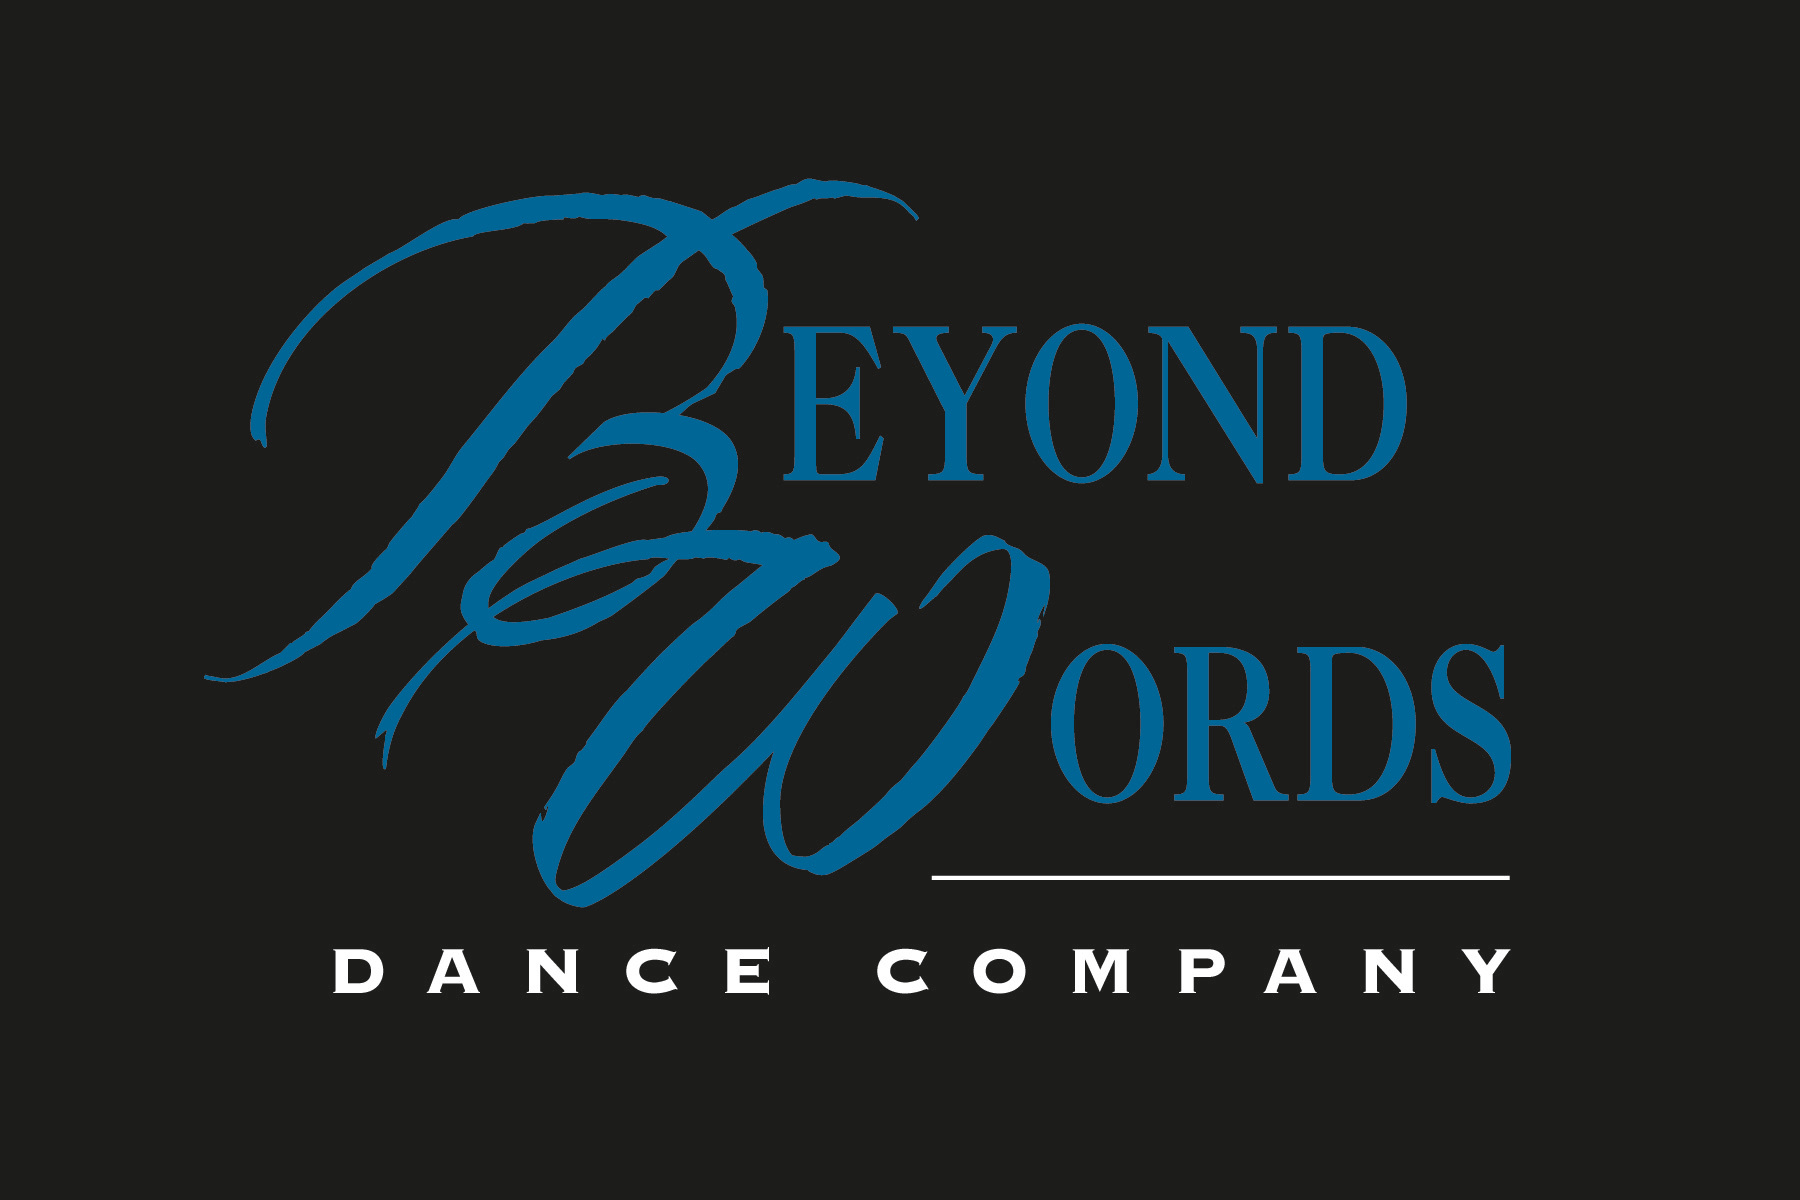 Beyond Words Dance Company